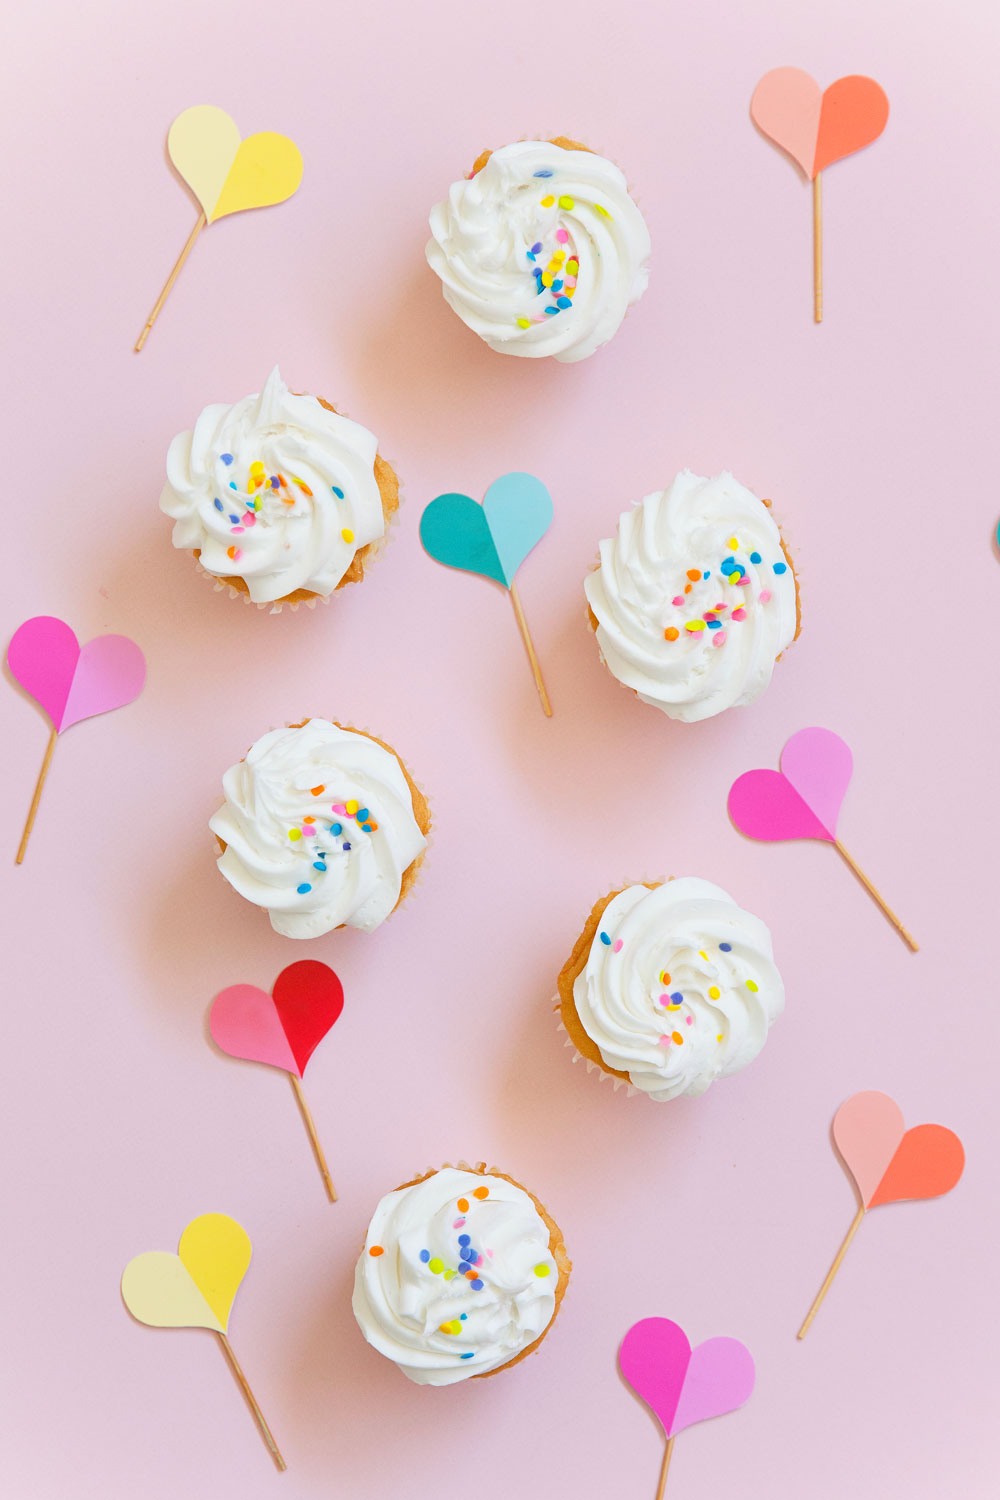 FREE printable heart cupcake toppers | TELL LOVE AND PARTY Valentine's day is coming up and these are perfect for class parties, office treats or just for friends! Either way don't leave those cupcakes plain and boring! -DIY -CAKE TOPPERS